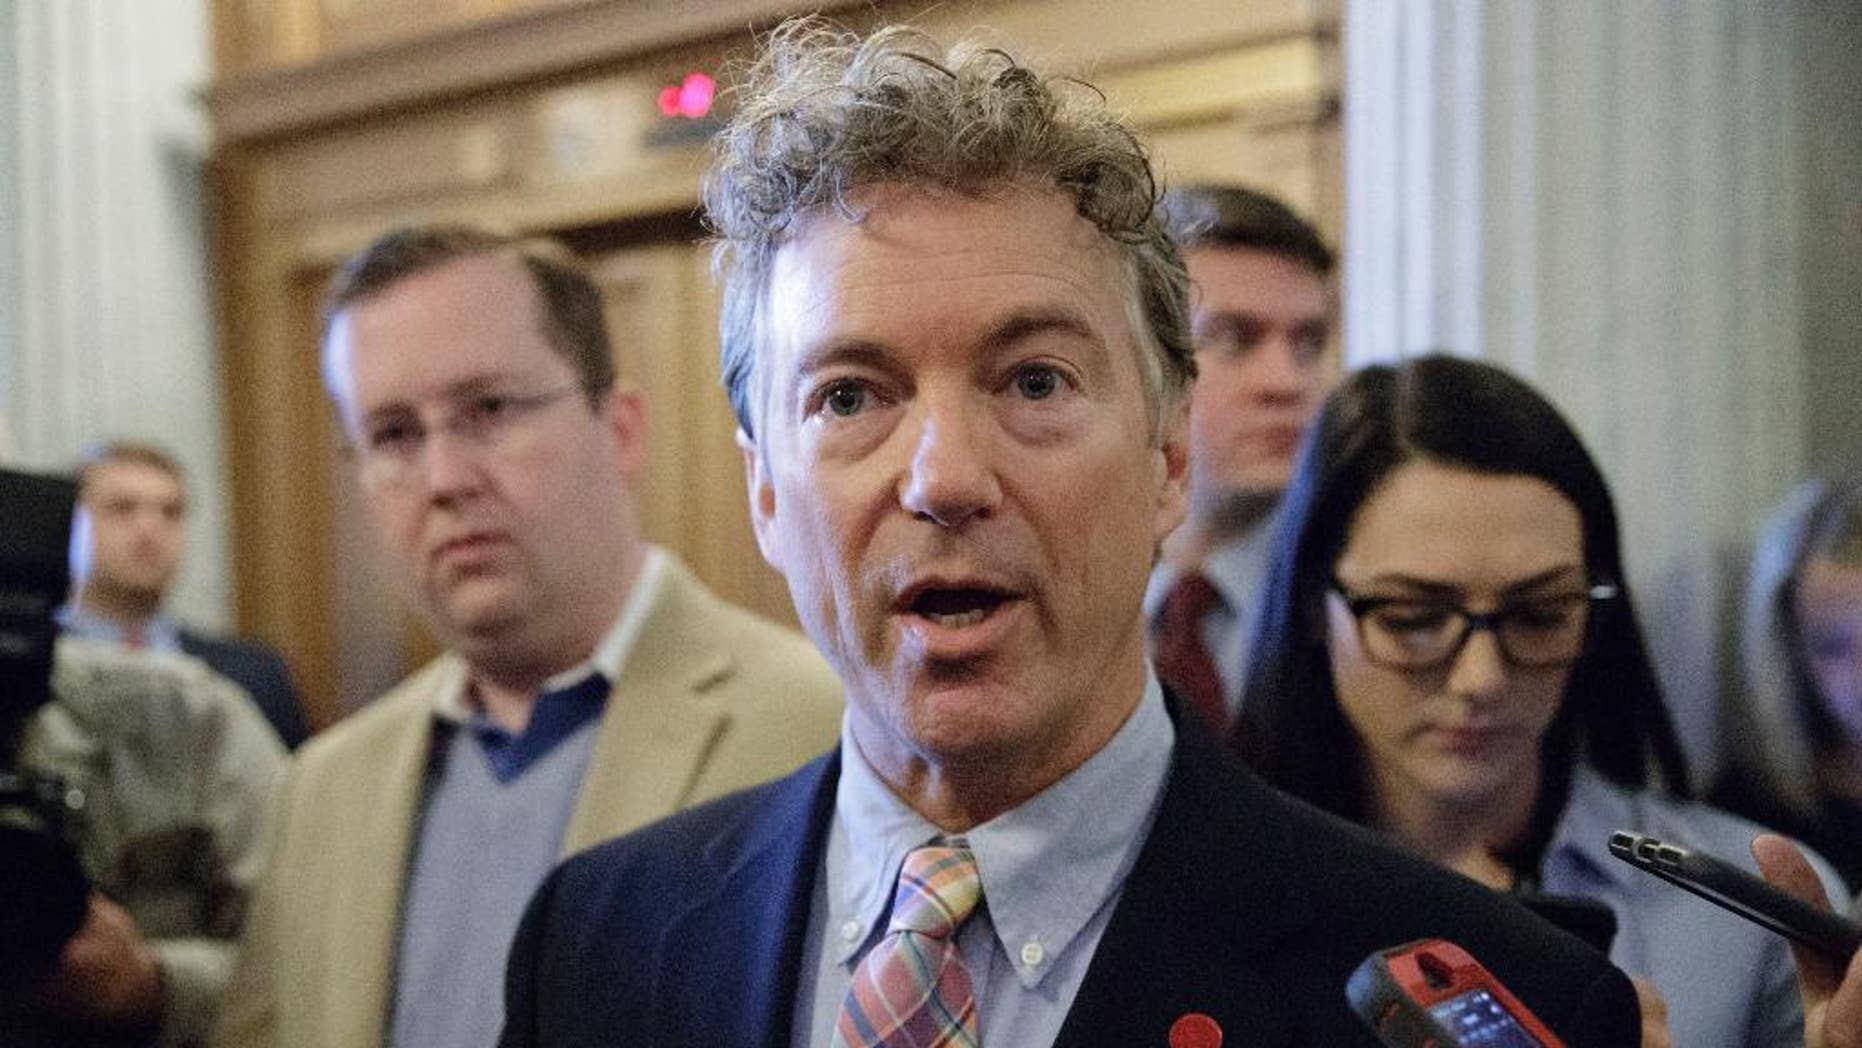 FILE - In this April 7, 2017, file photo, Sen. Rand Paul, R-Ky., speaks to reporters on Capitol Hill in Washington. Paul and Sen. Ron Wyden, D-Ore., are asking the nation's top intelligence official to release more information about the communications of American citizens swept up in surveillance operations. (AP Photo/J. Scott Applewhite, file)